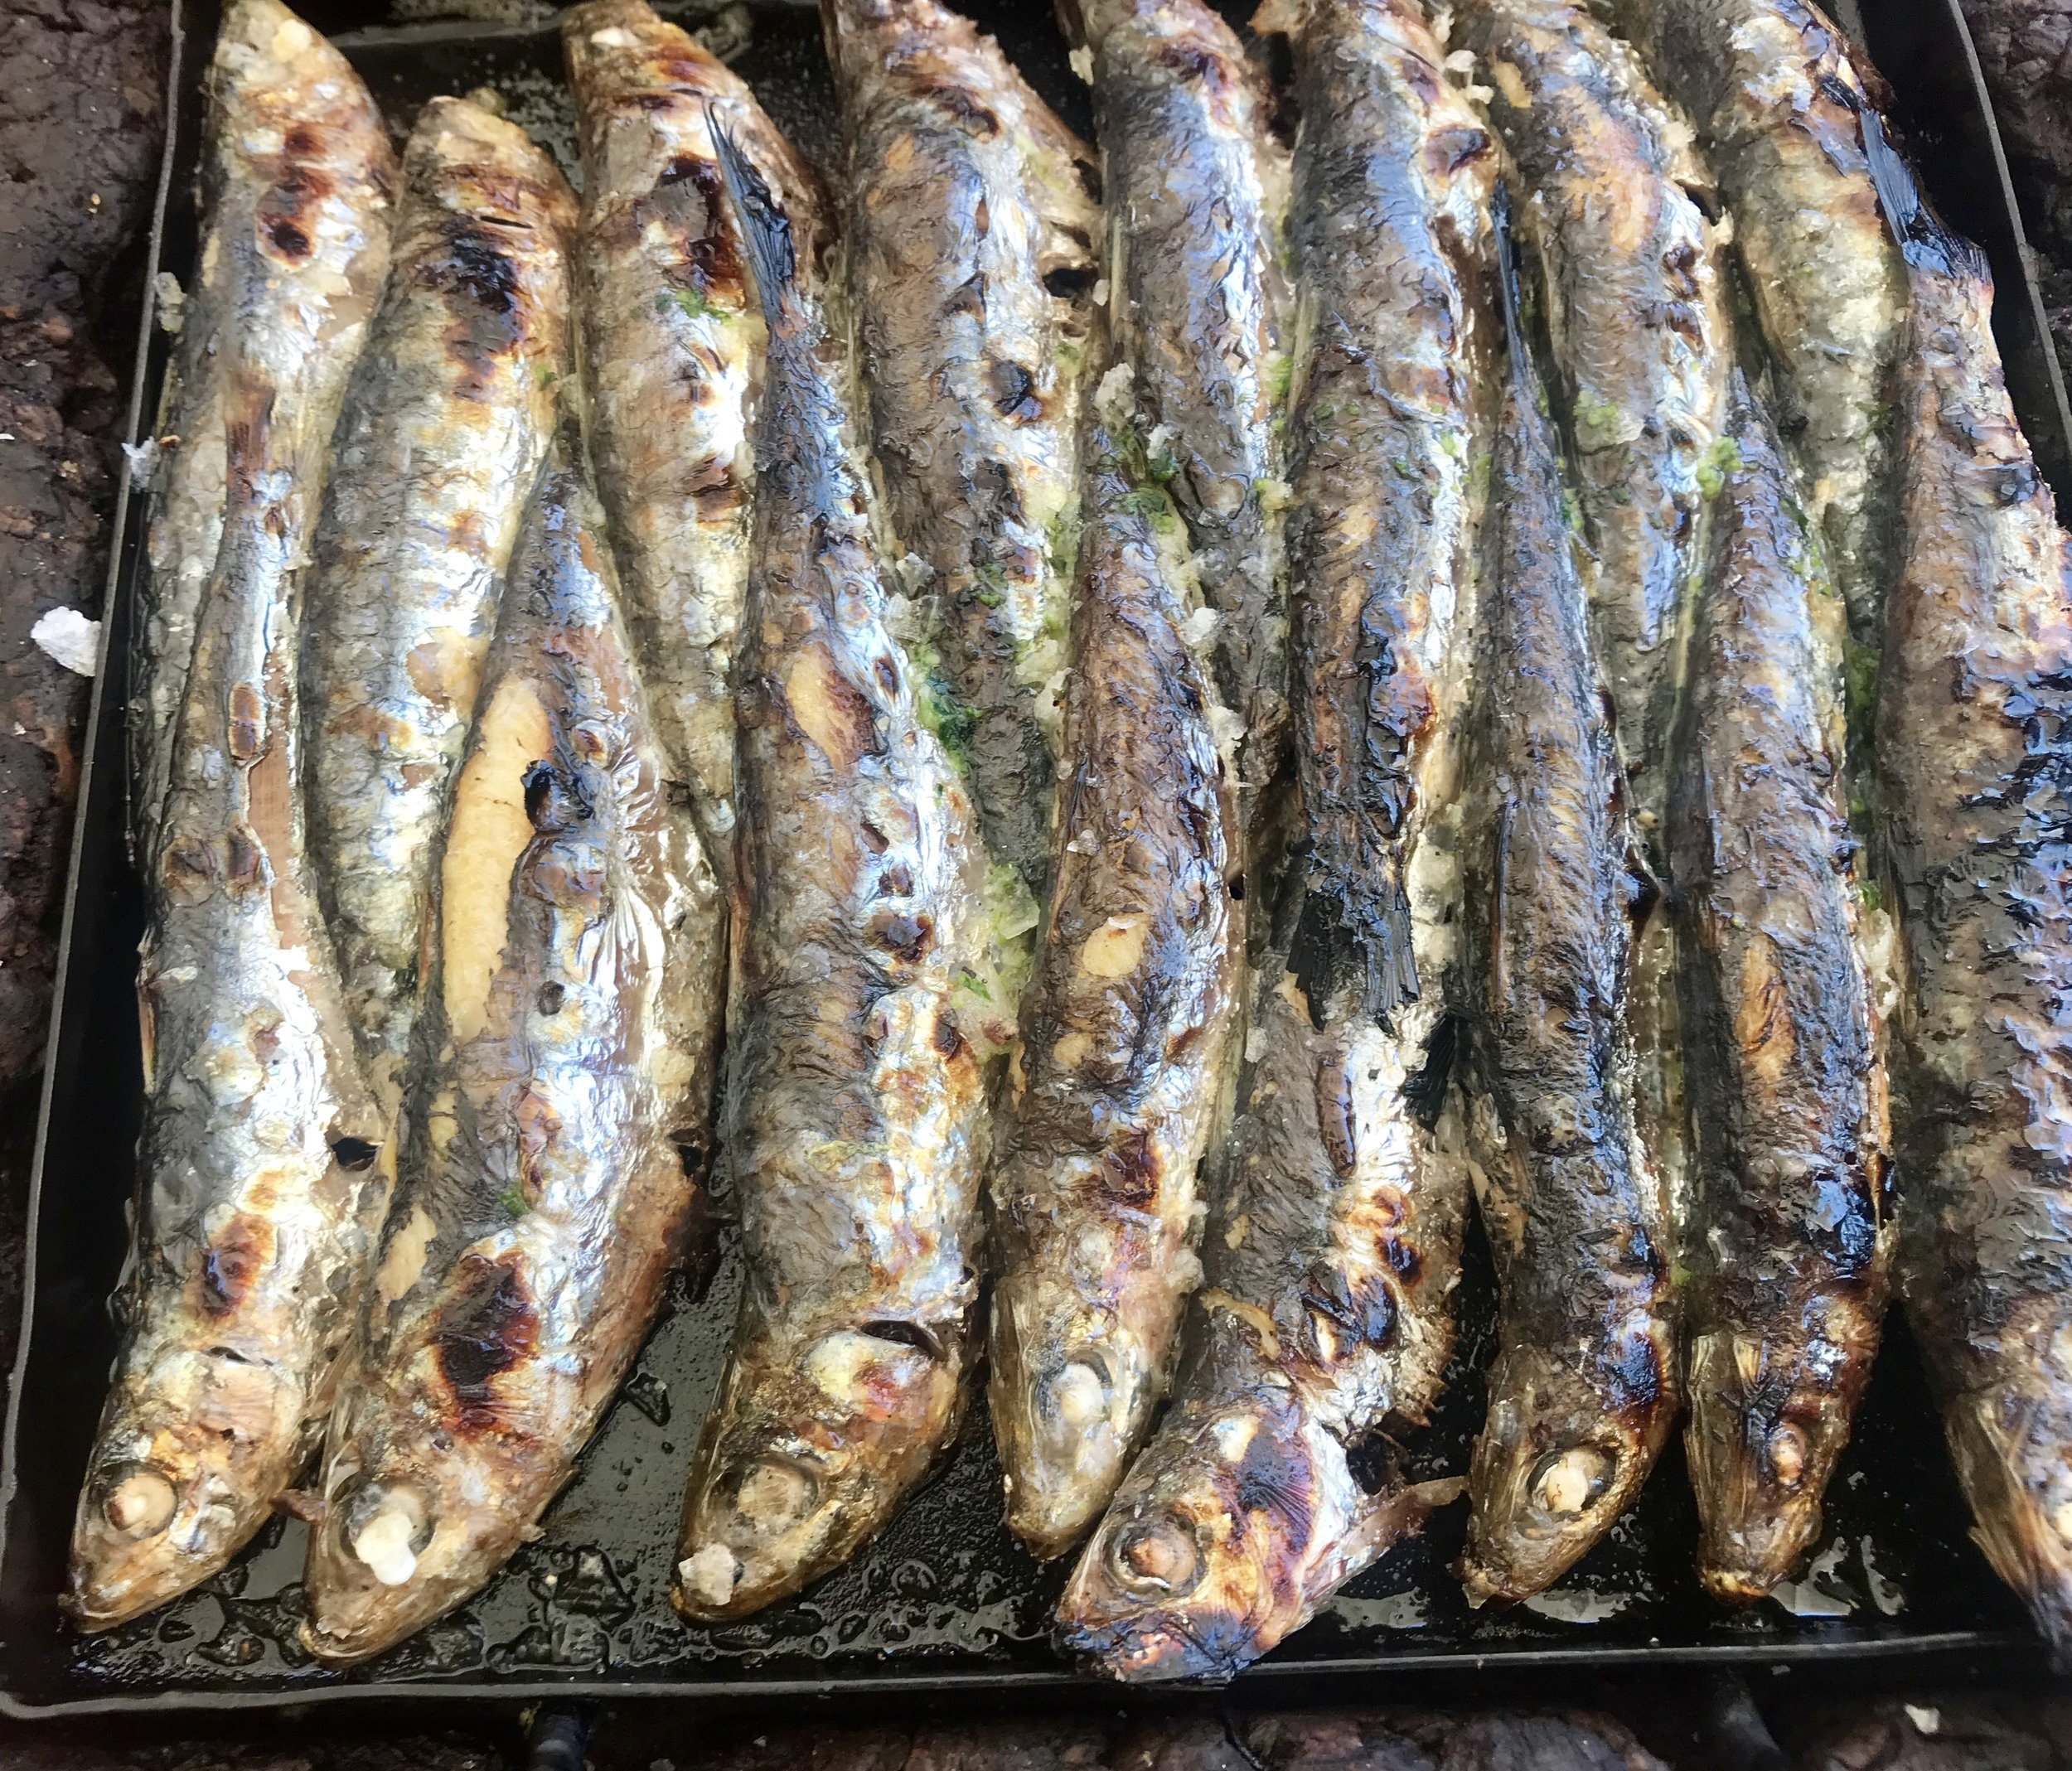 Lunch at the beach starts with these perfectly grilled sardines - so fresh and delicate.